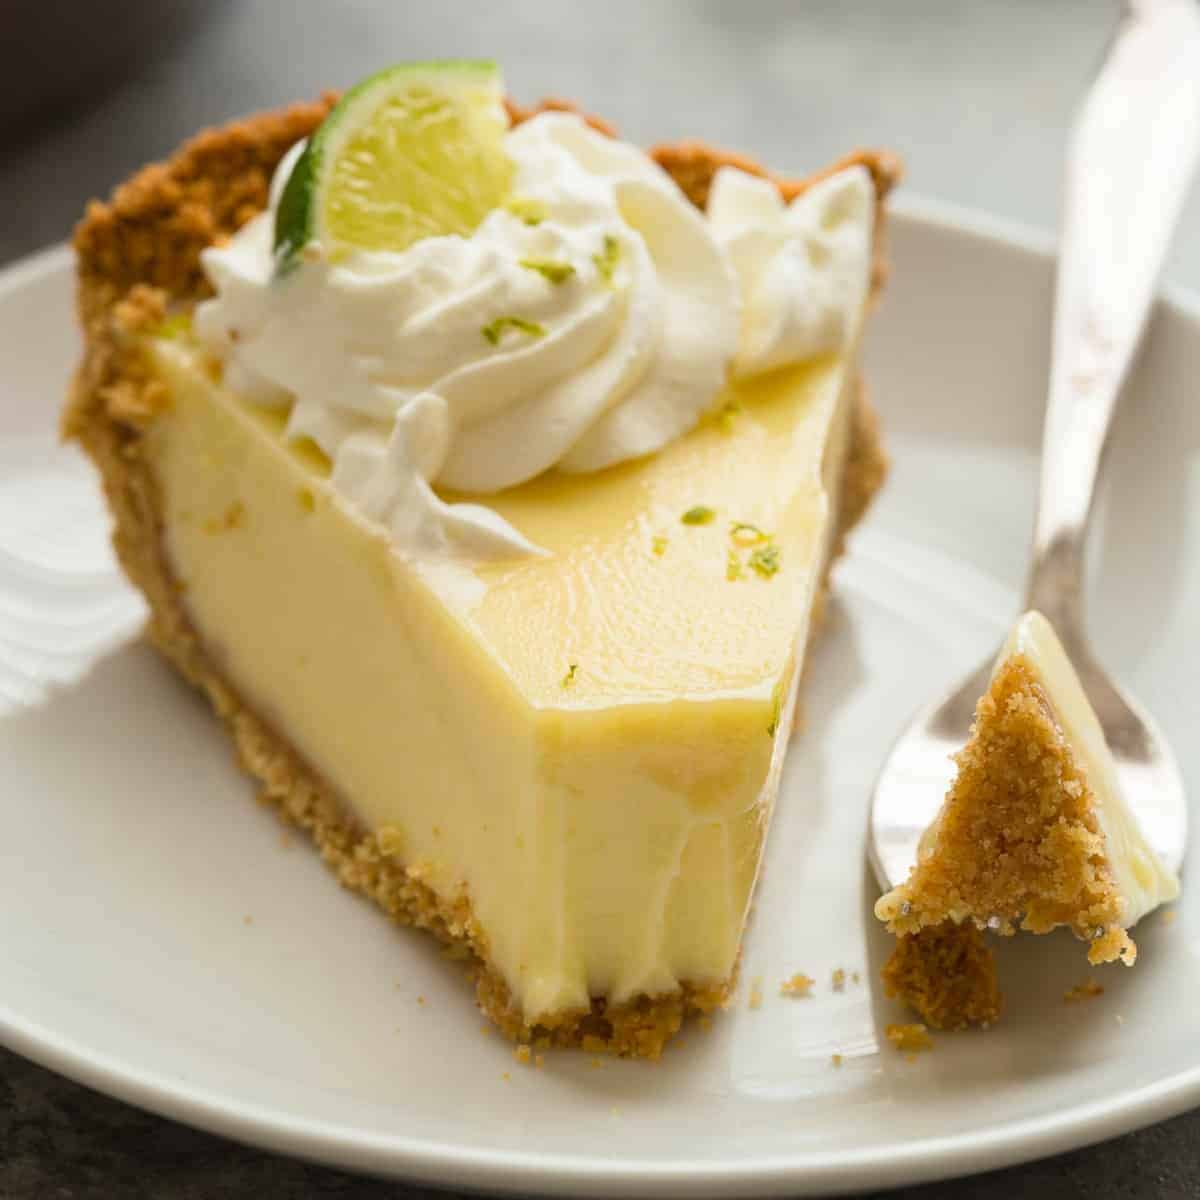 Close up view of lime pie in a white plate with a fork taking out a bite.